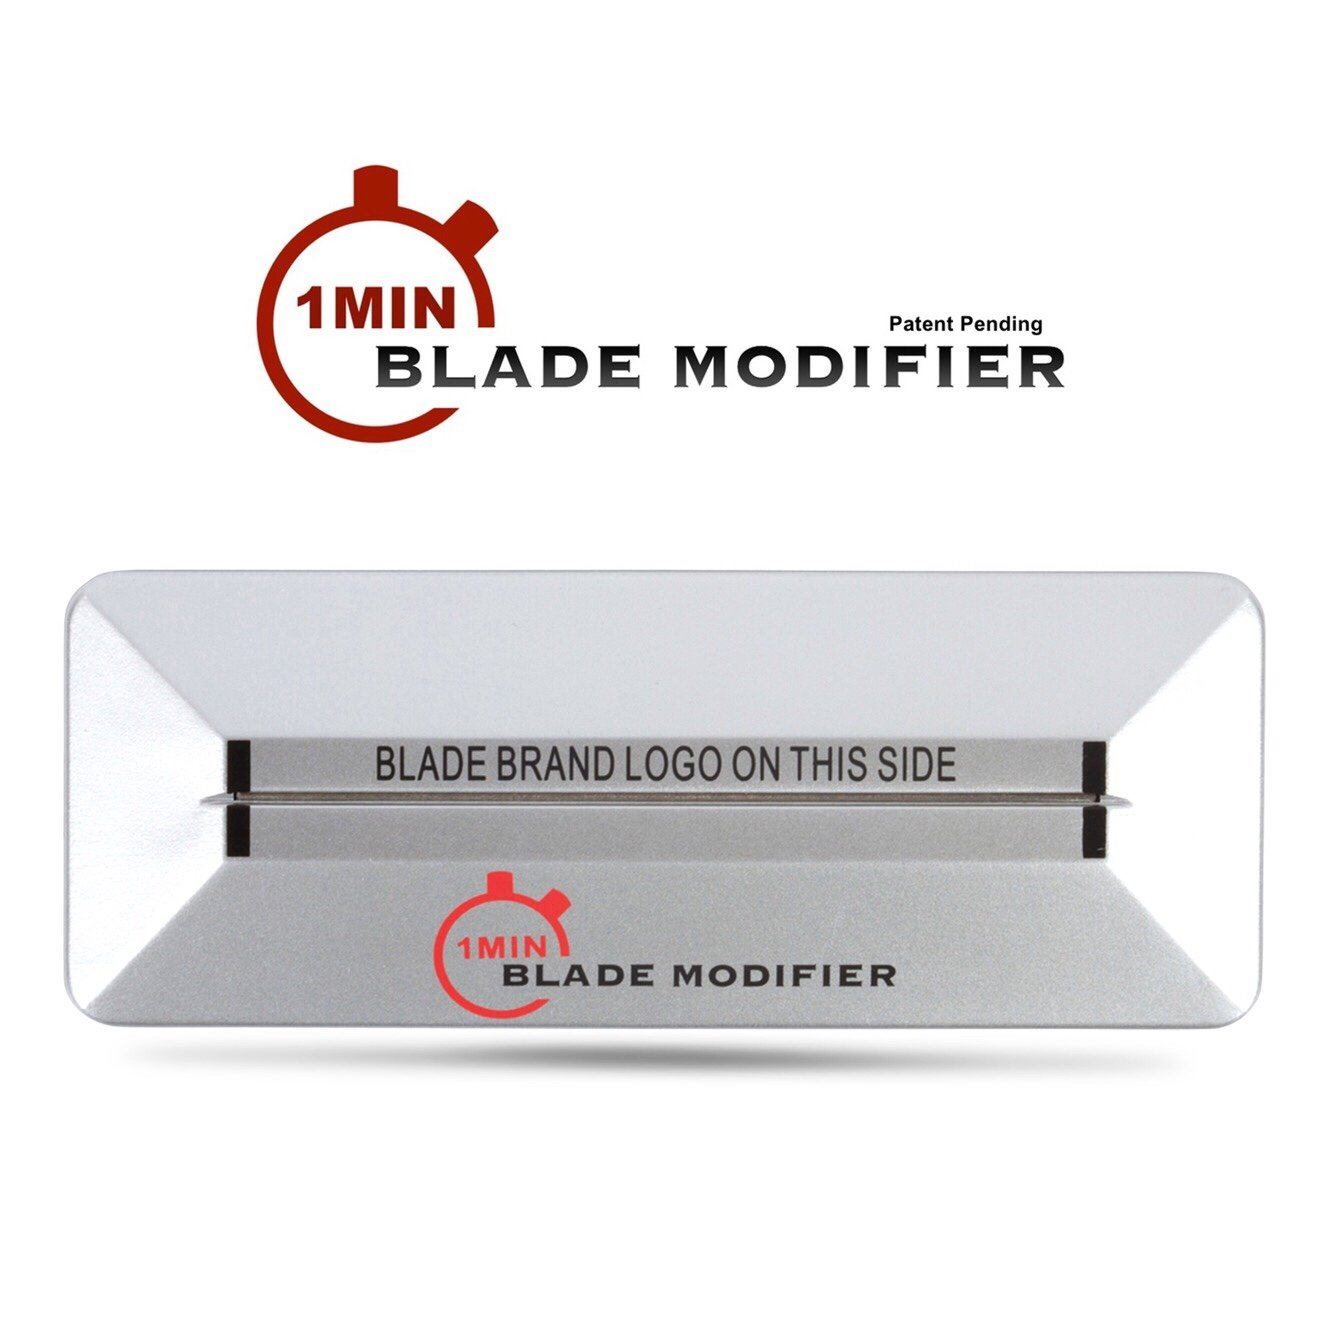 1Min Blade Modifier by The Rich Barber | 1 Minute Trimmer Sharpener Tool for Andis, Wahl, Oster, BaByliss Trimmer Blades & More